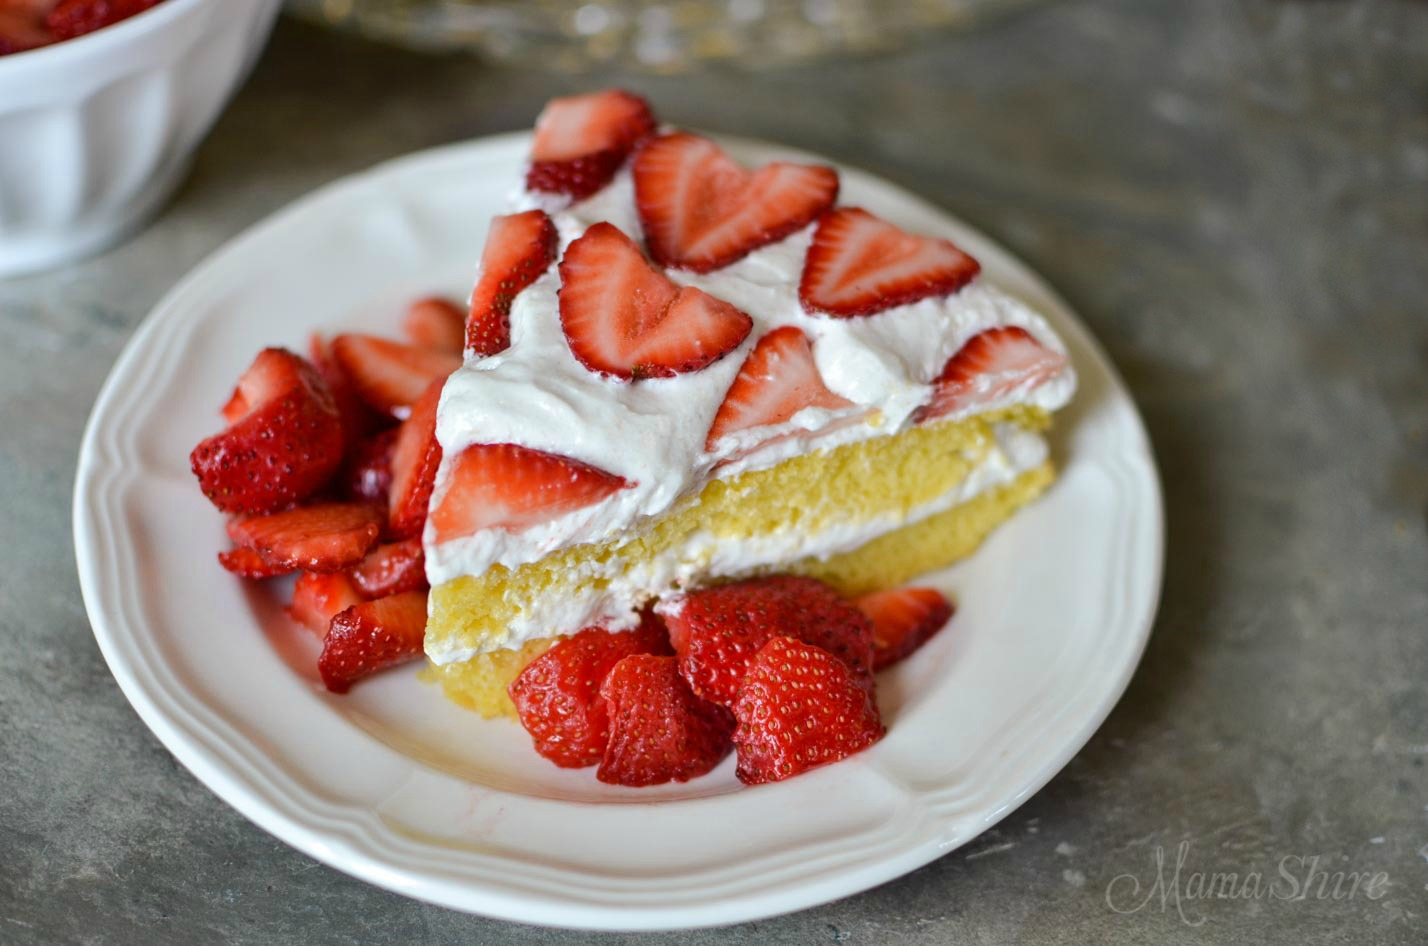 A yummy serving of gluten-free, dairy-free strawberry shortcake.